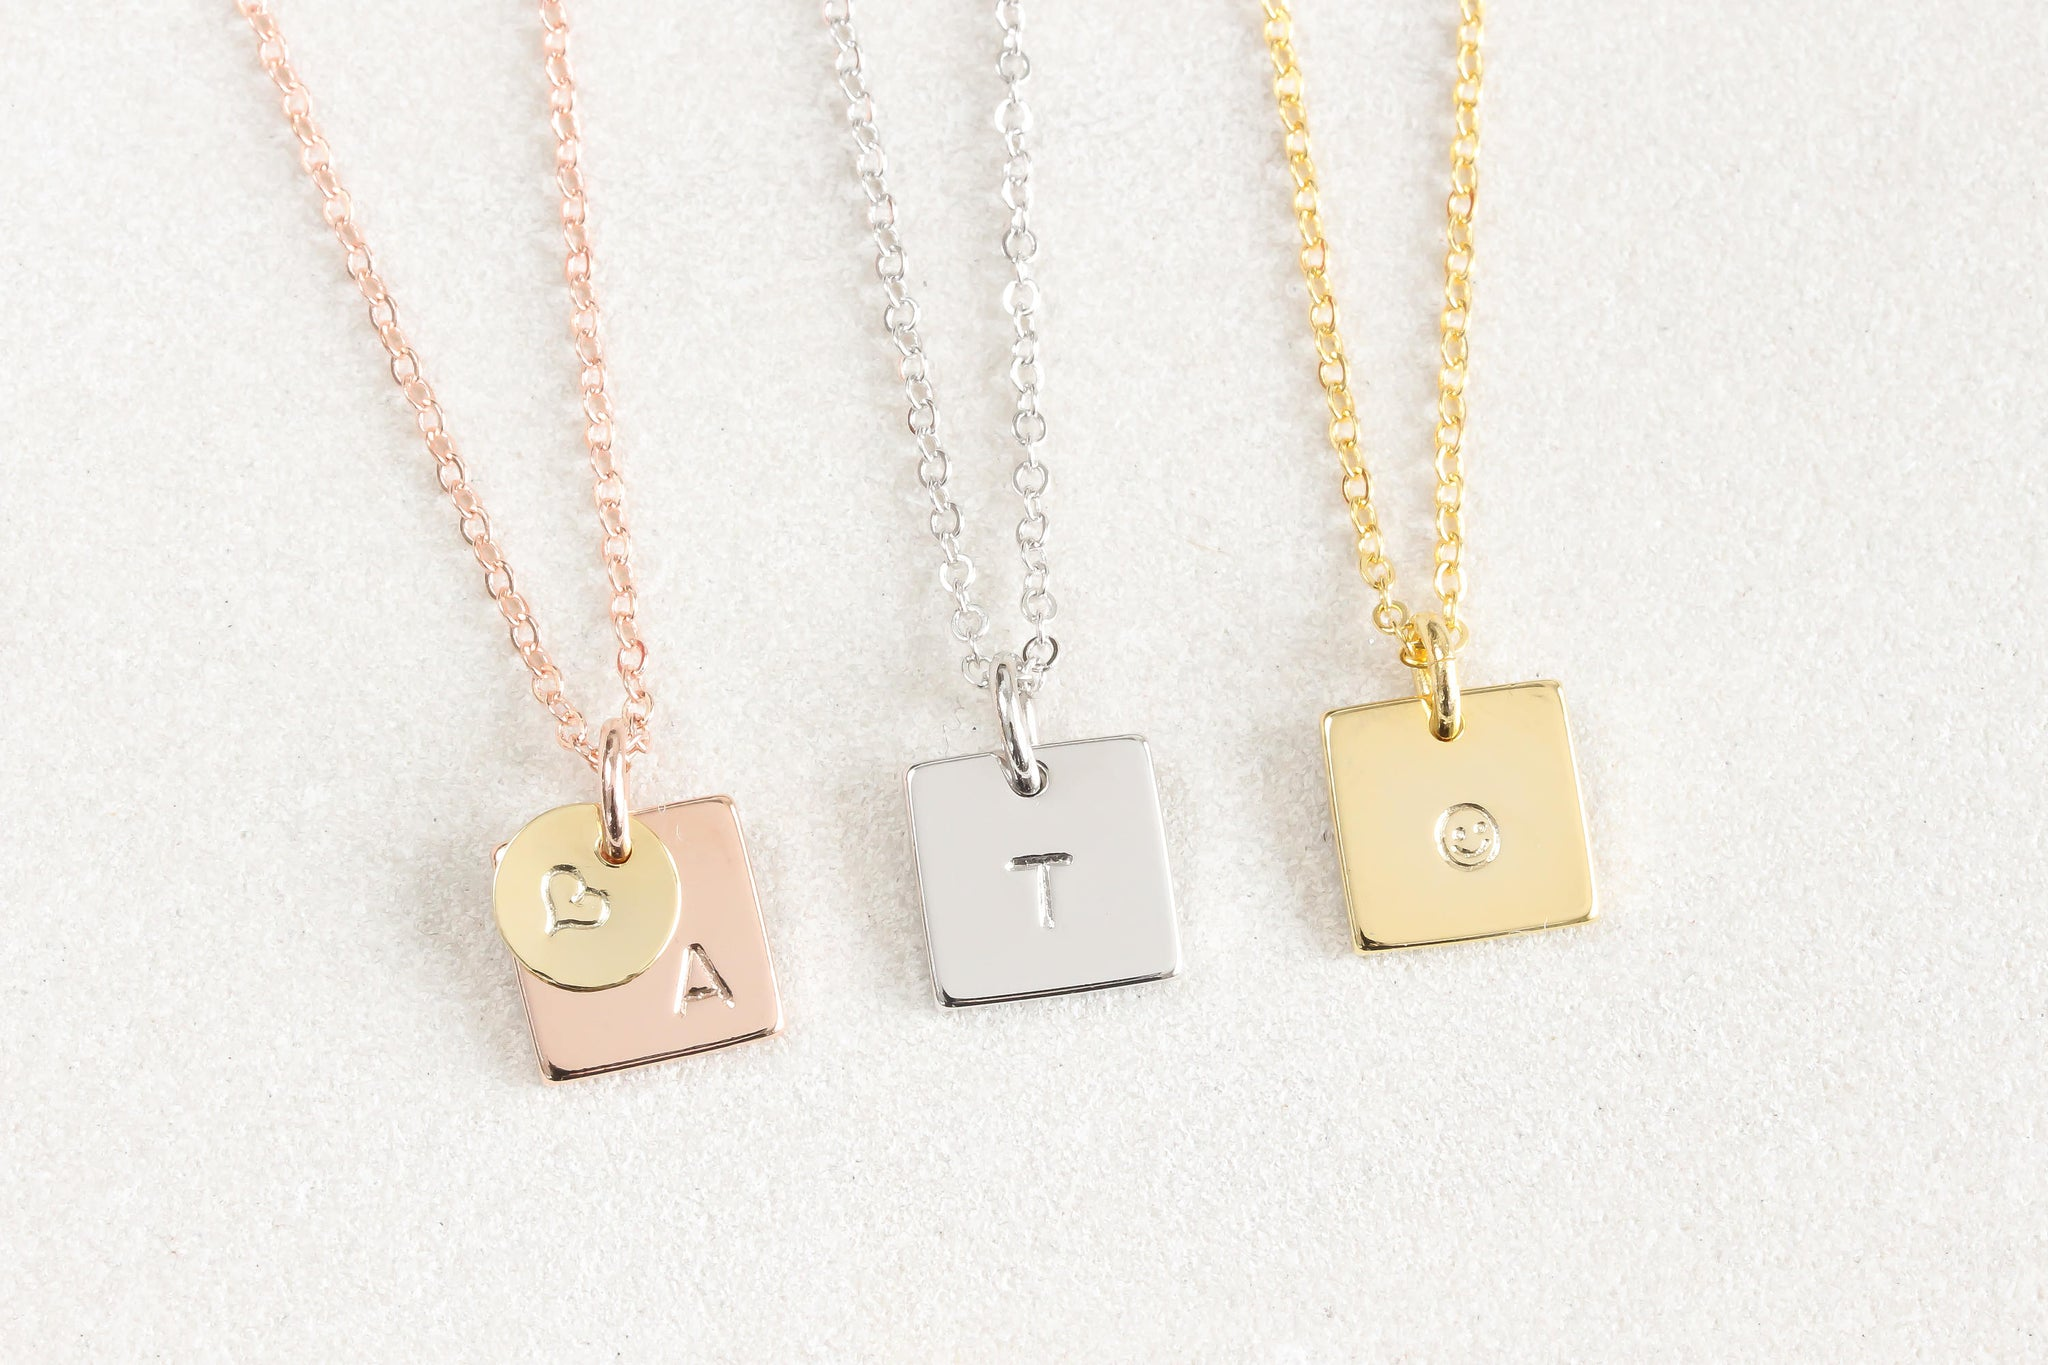 Tiny Gold Rose Gold Silver initial hand Stamped Square Disc Necklace, Small Letter Minimalist Delicate Everyday, Bridesmaids Necklace - product_type] - Beautiz